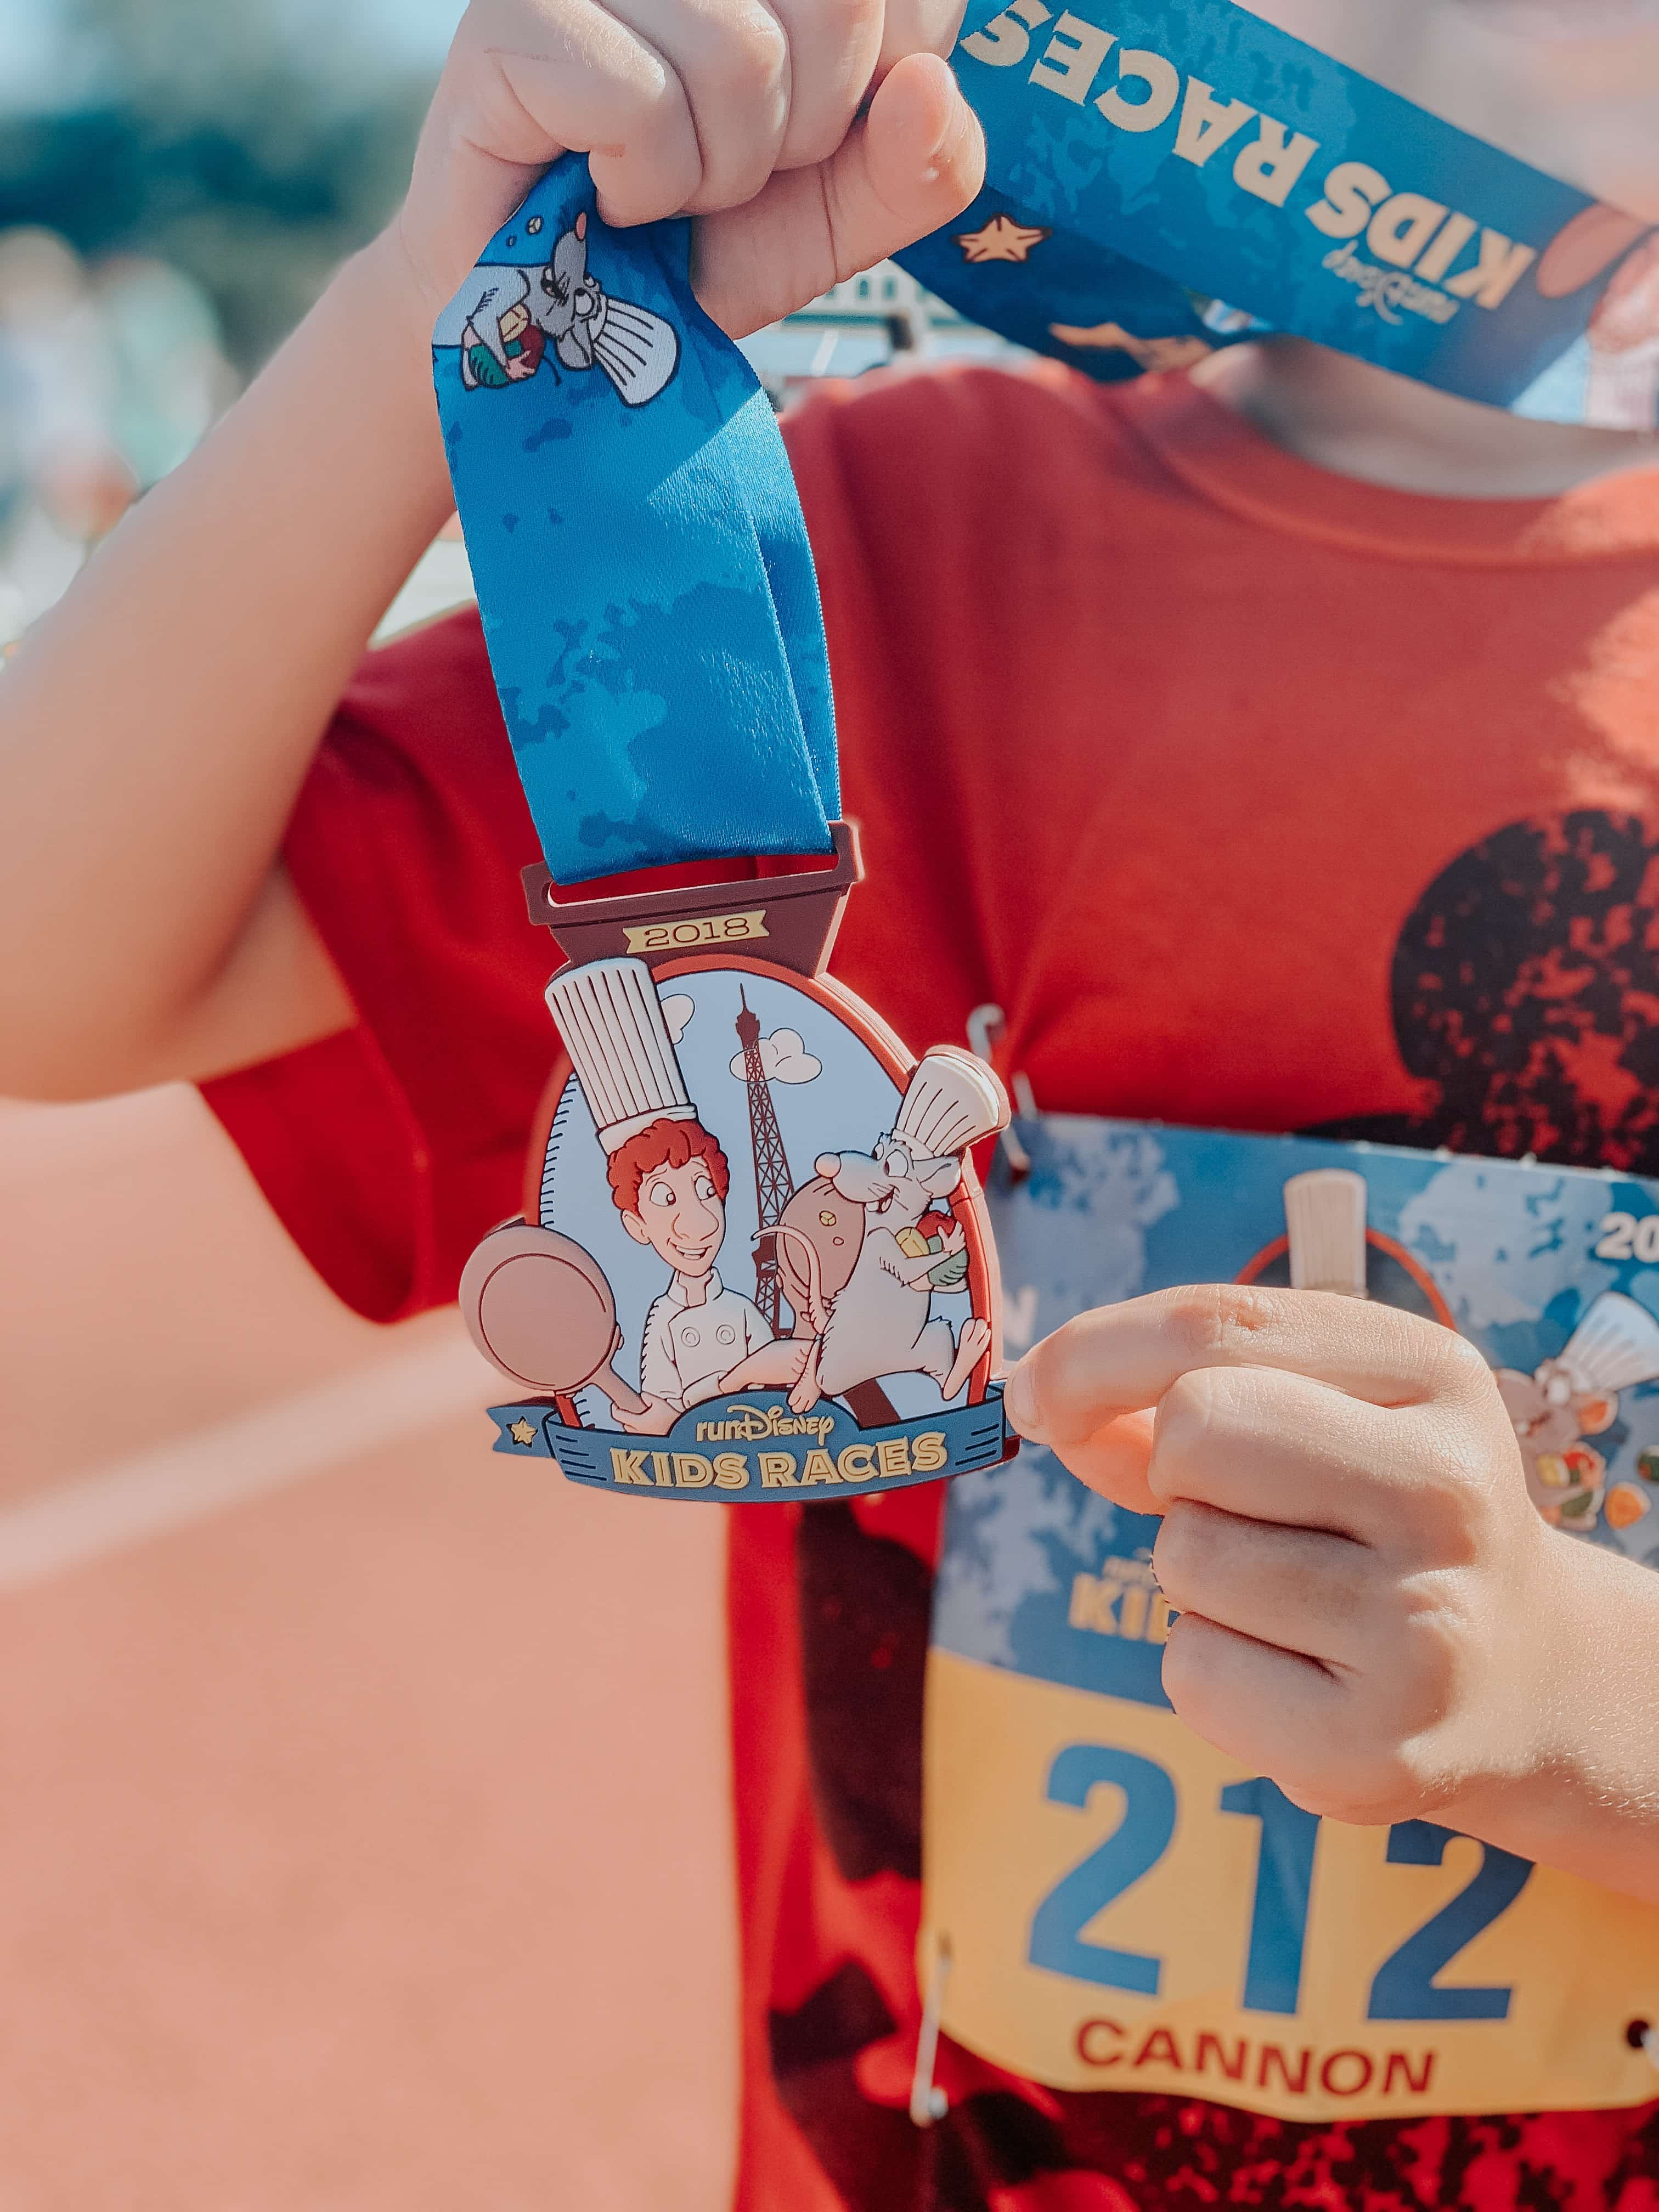 RunDisney For Kids: Everything You Need to Know about the RunDisney Kids Races